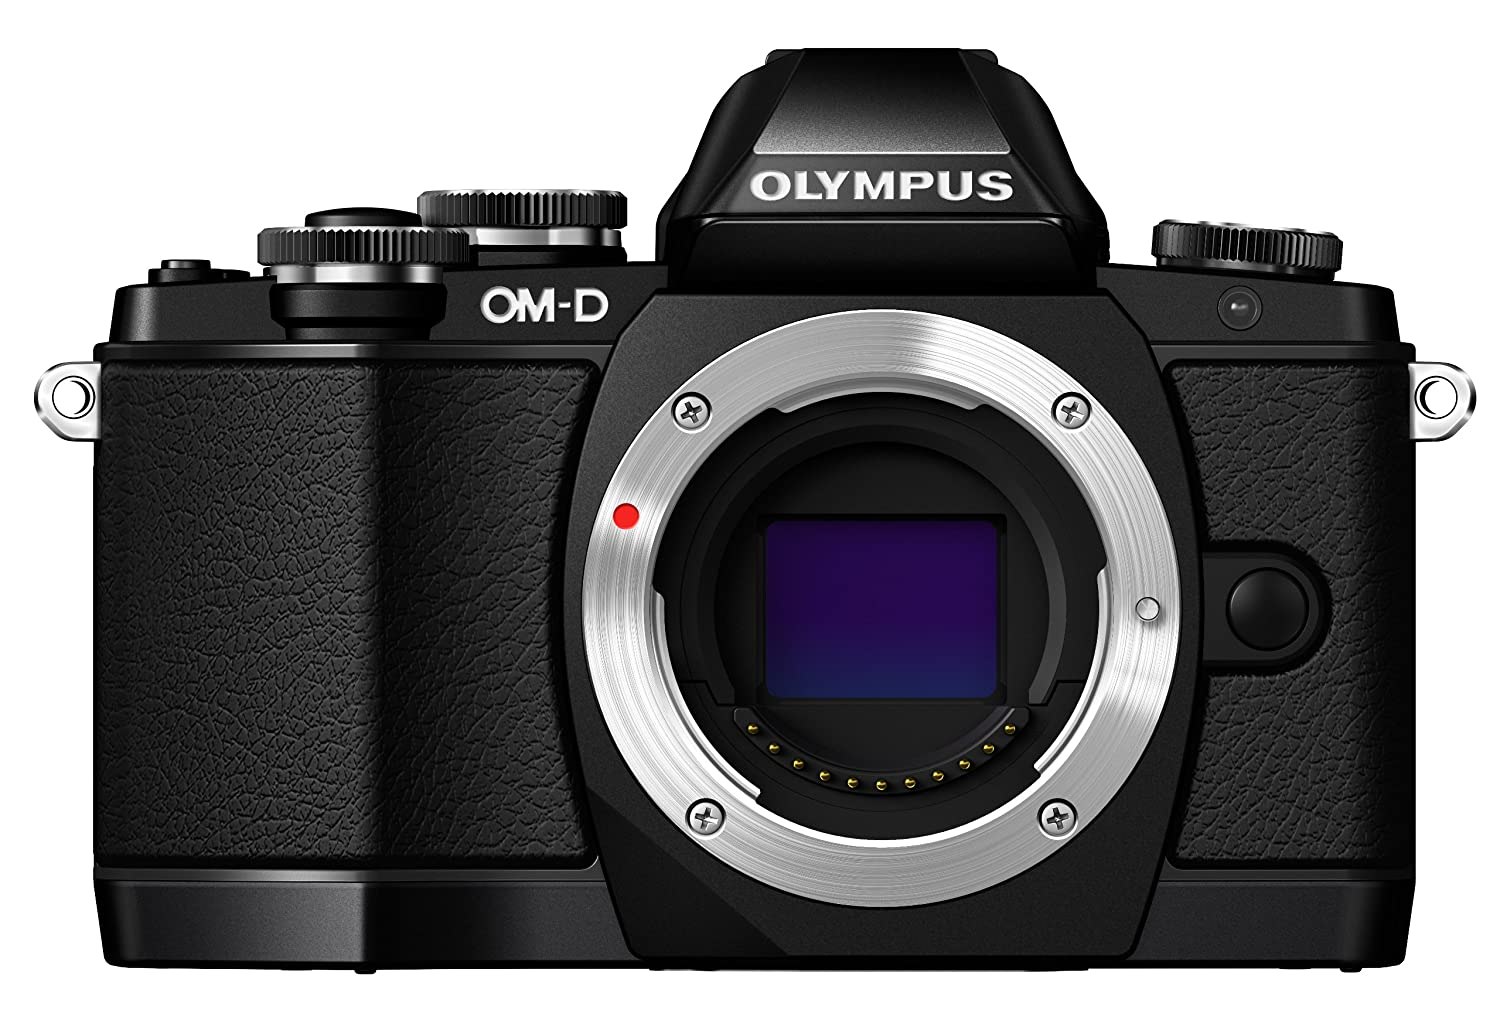 Olympus OM-D E-M10 Black Friday Deal 2021